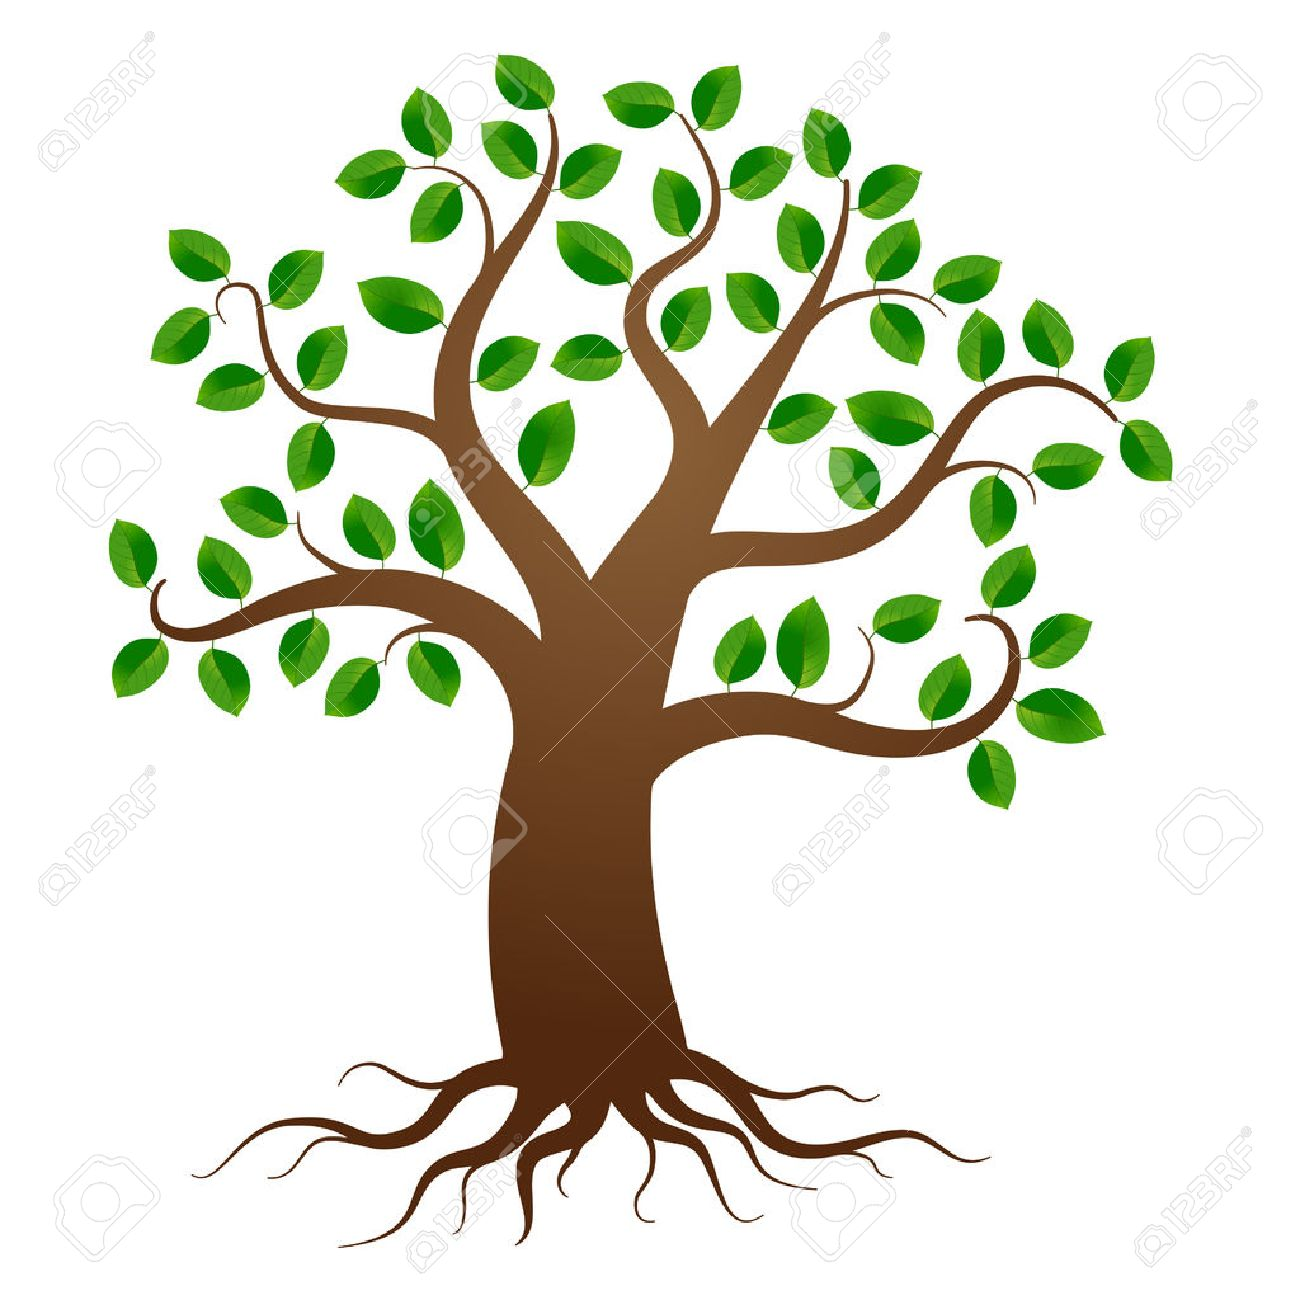 green tree with roots on white background royalty free cliparts rh 123rf com transparent tree with roots clipart clipart tree with roots and leaves